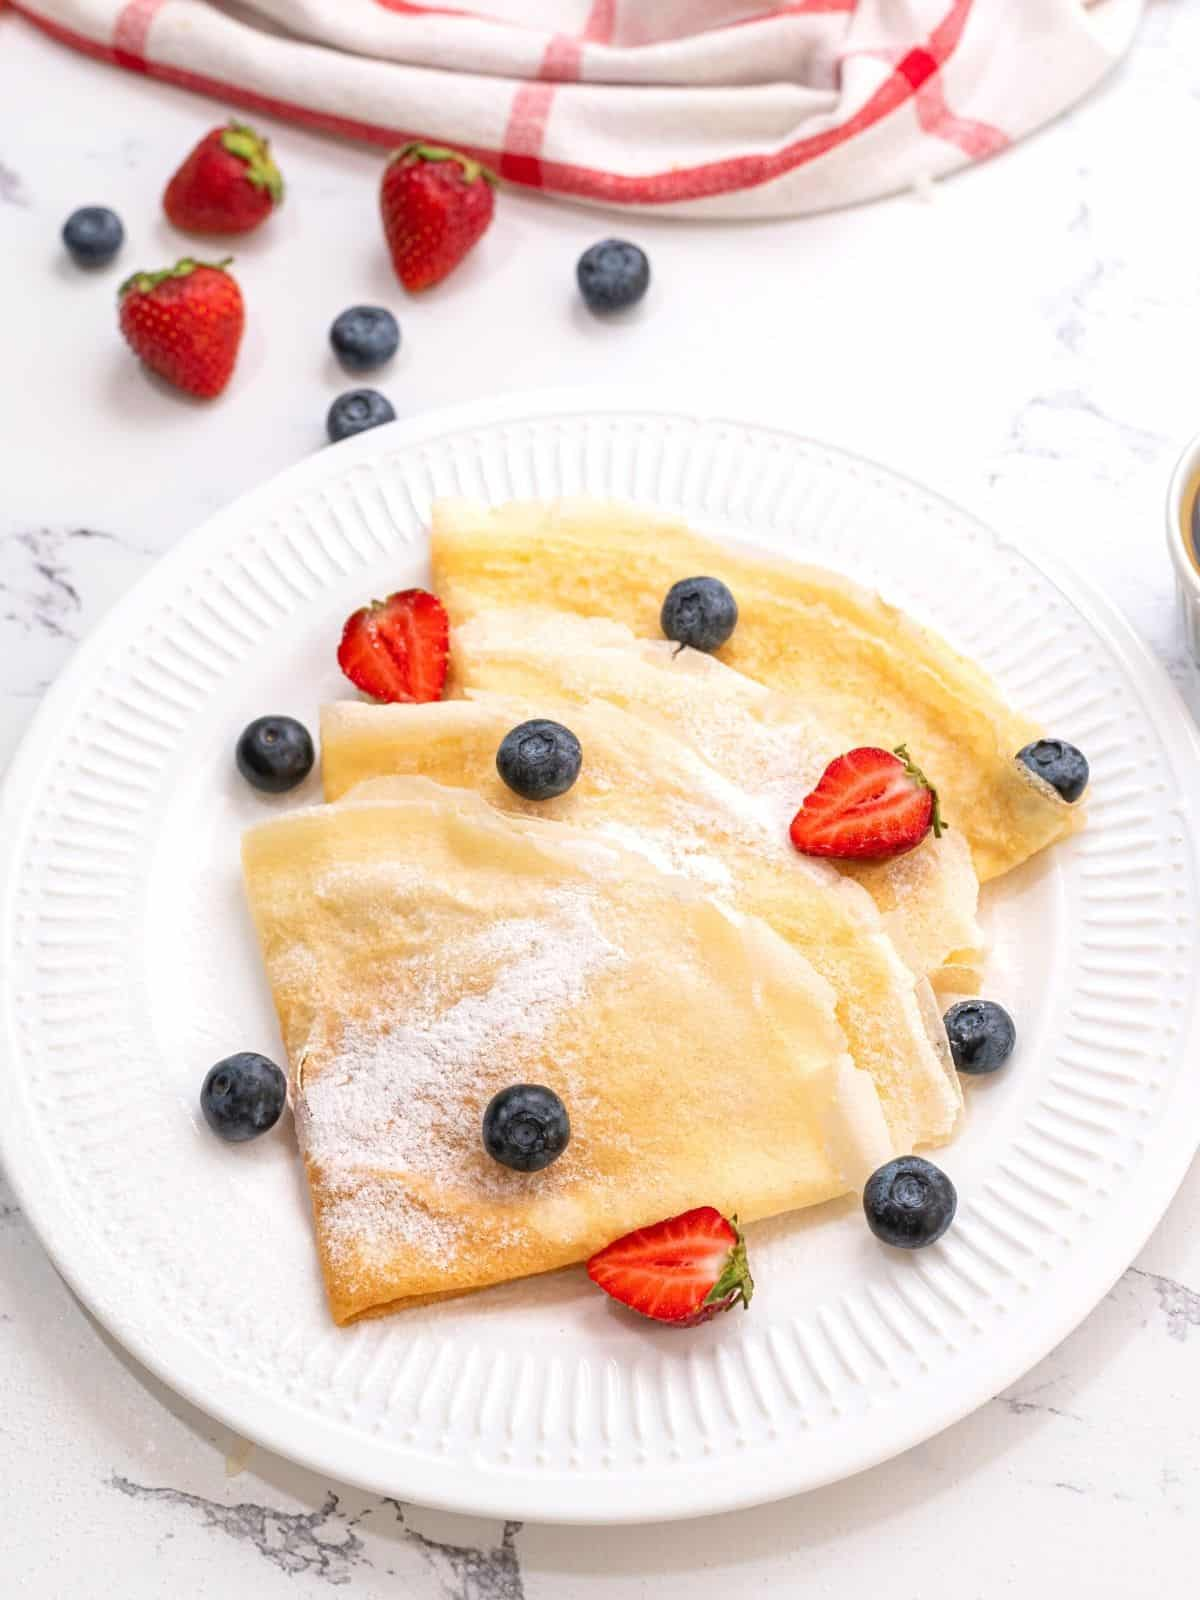 4 crepes folded on white plate topped with powdered sugar and berries.